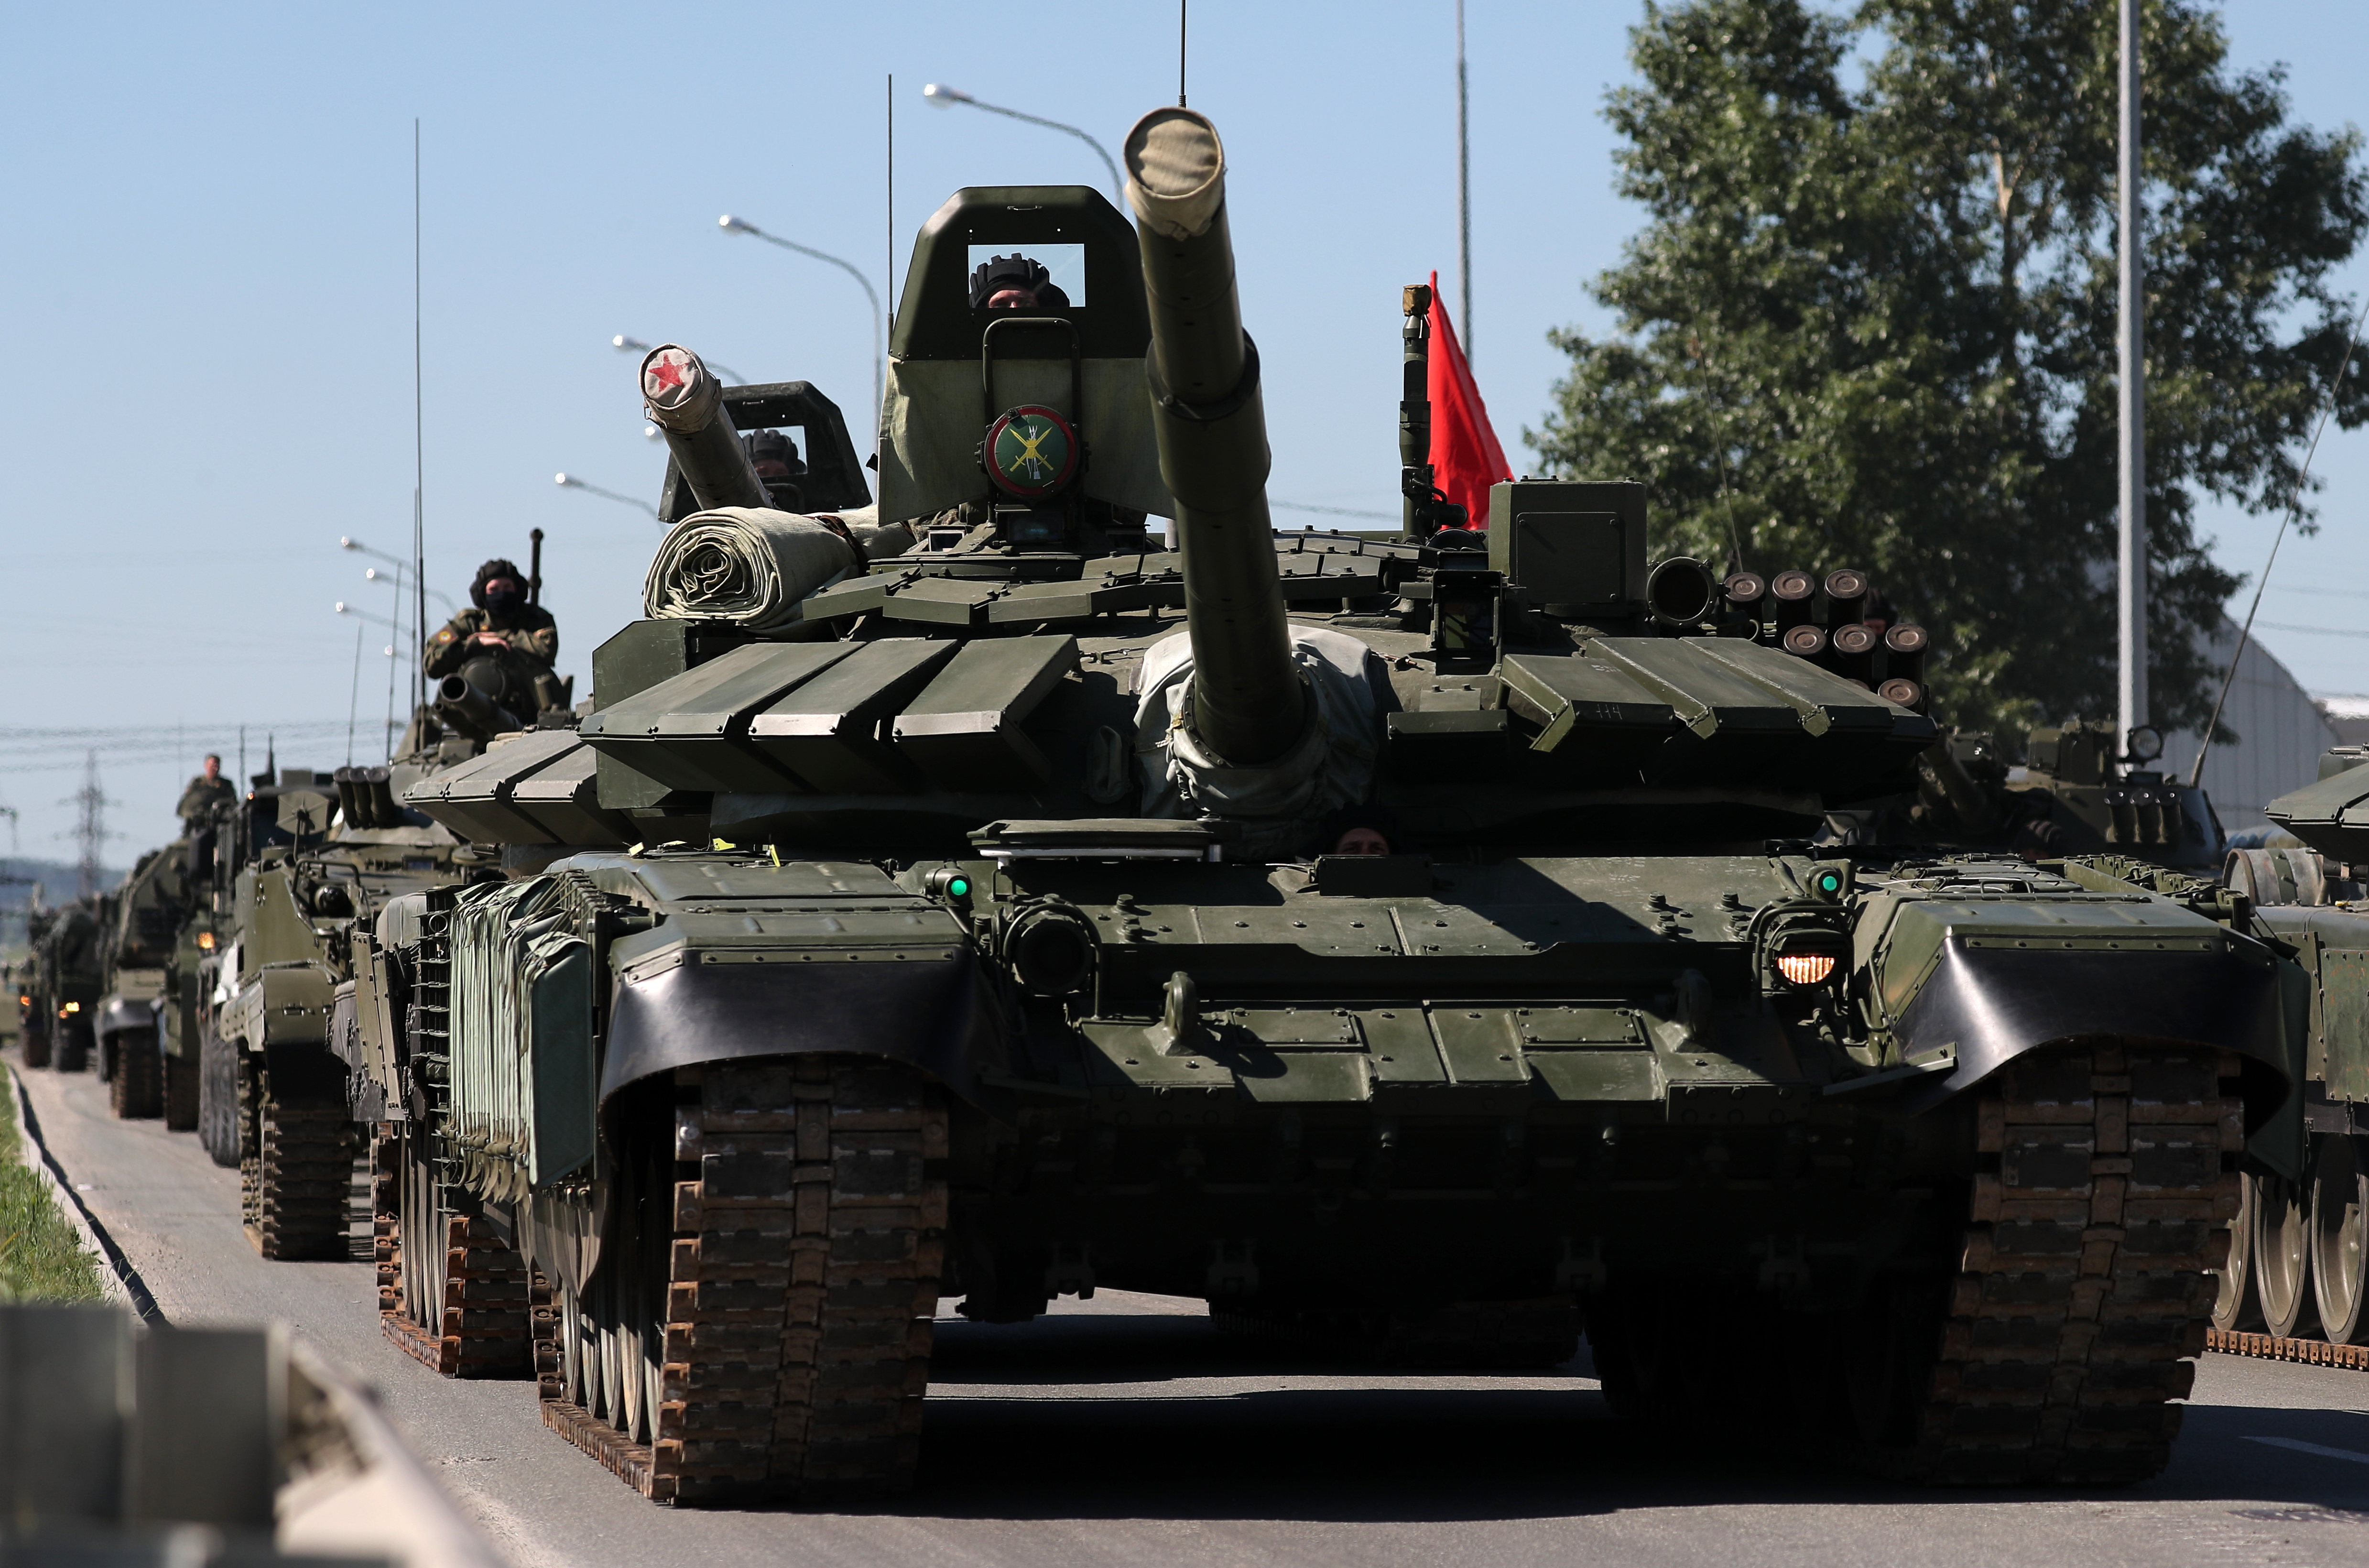 YEKATERINBURG, RUSSIA  JUNE 8, 2020: A T-72B3M tank and other military hardware are seen during a rehearsal of a military parade marking the 75th anniversary of the Victory in WWII. Victory Day parades across Russia have been postponed due to lockdown restrictions imposed in connection with the pandemic of the novel coronavirus disease (COVID-19). Donat Sorokin/TASS (Photo by Donat Sorokin\TASS via Getty Images)